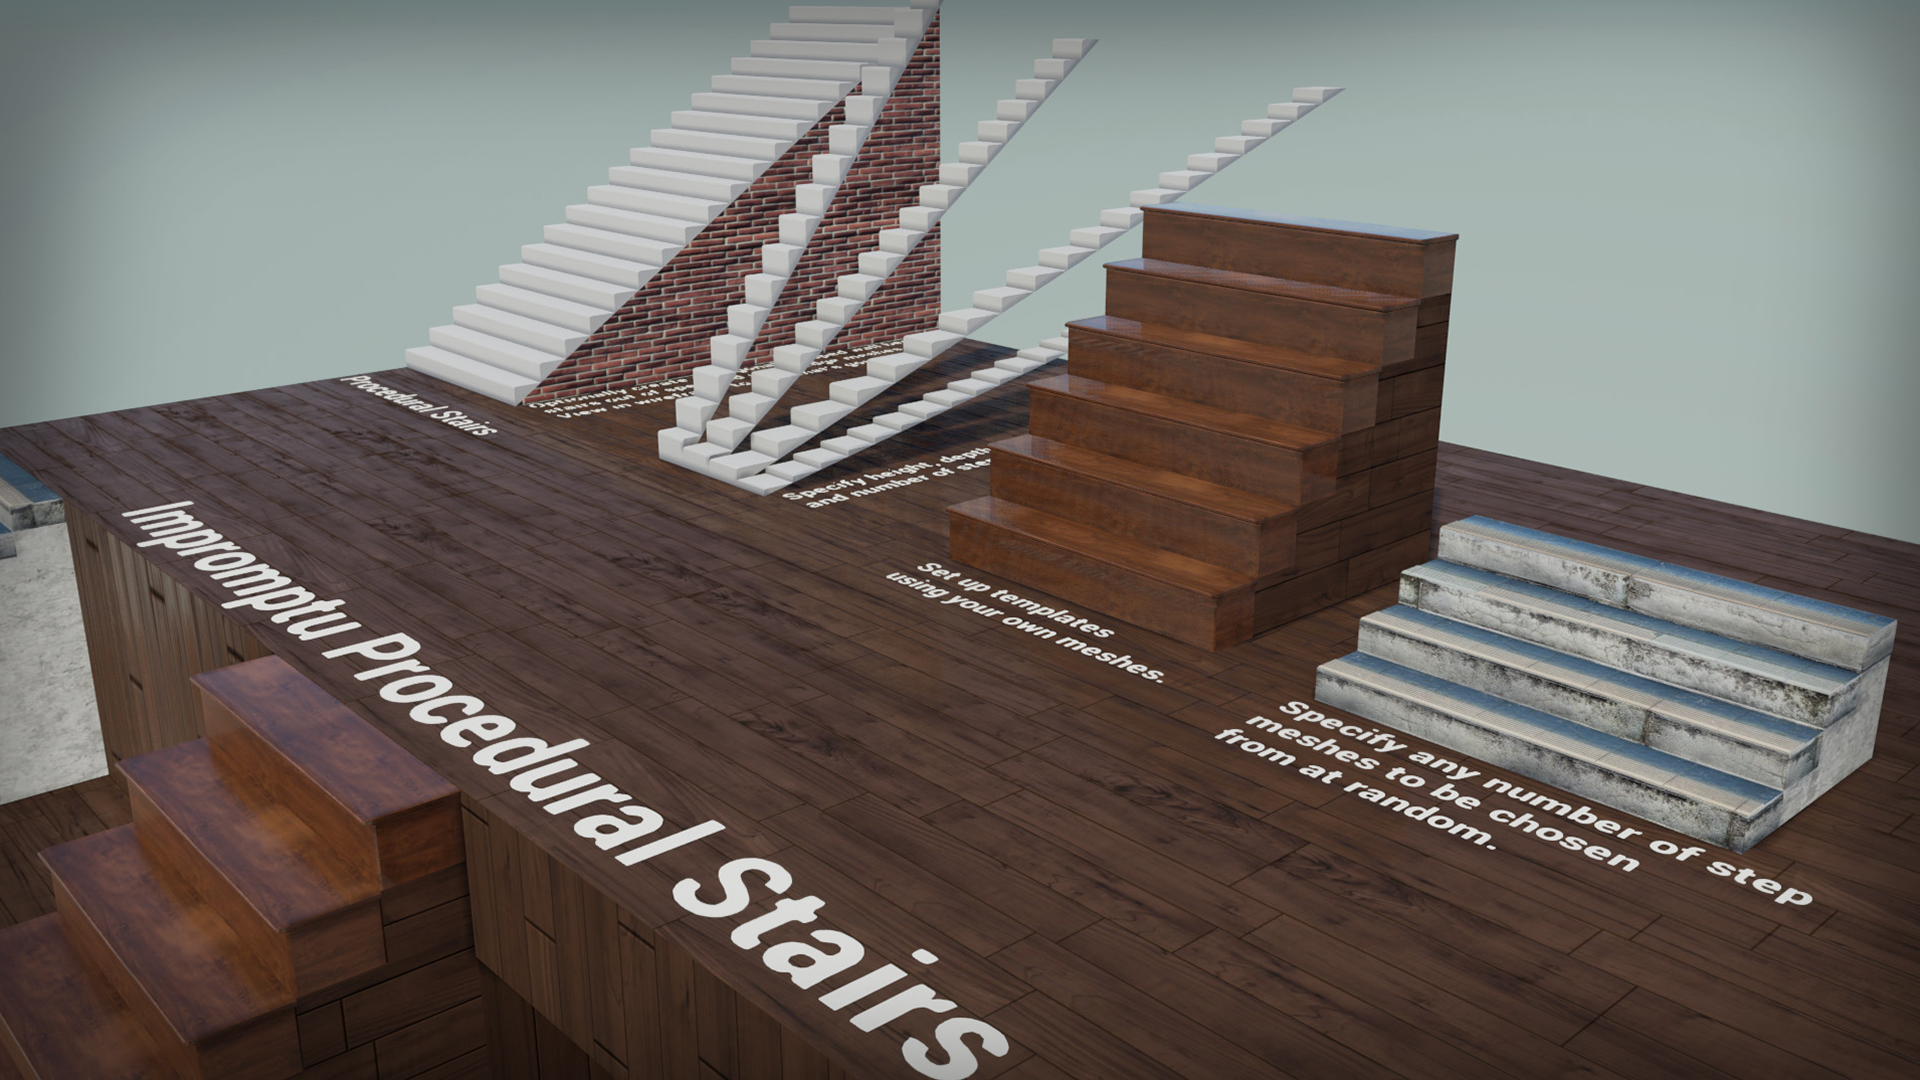 Impromptu Procedural Stairs by Impromptu Games